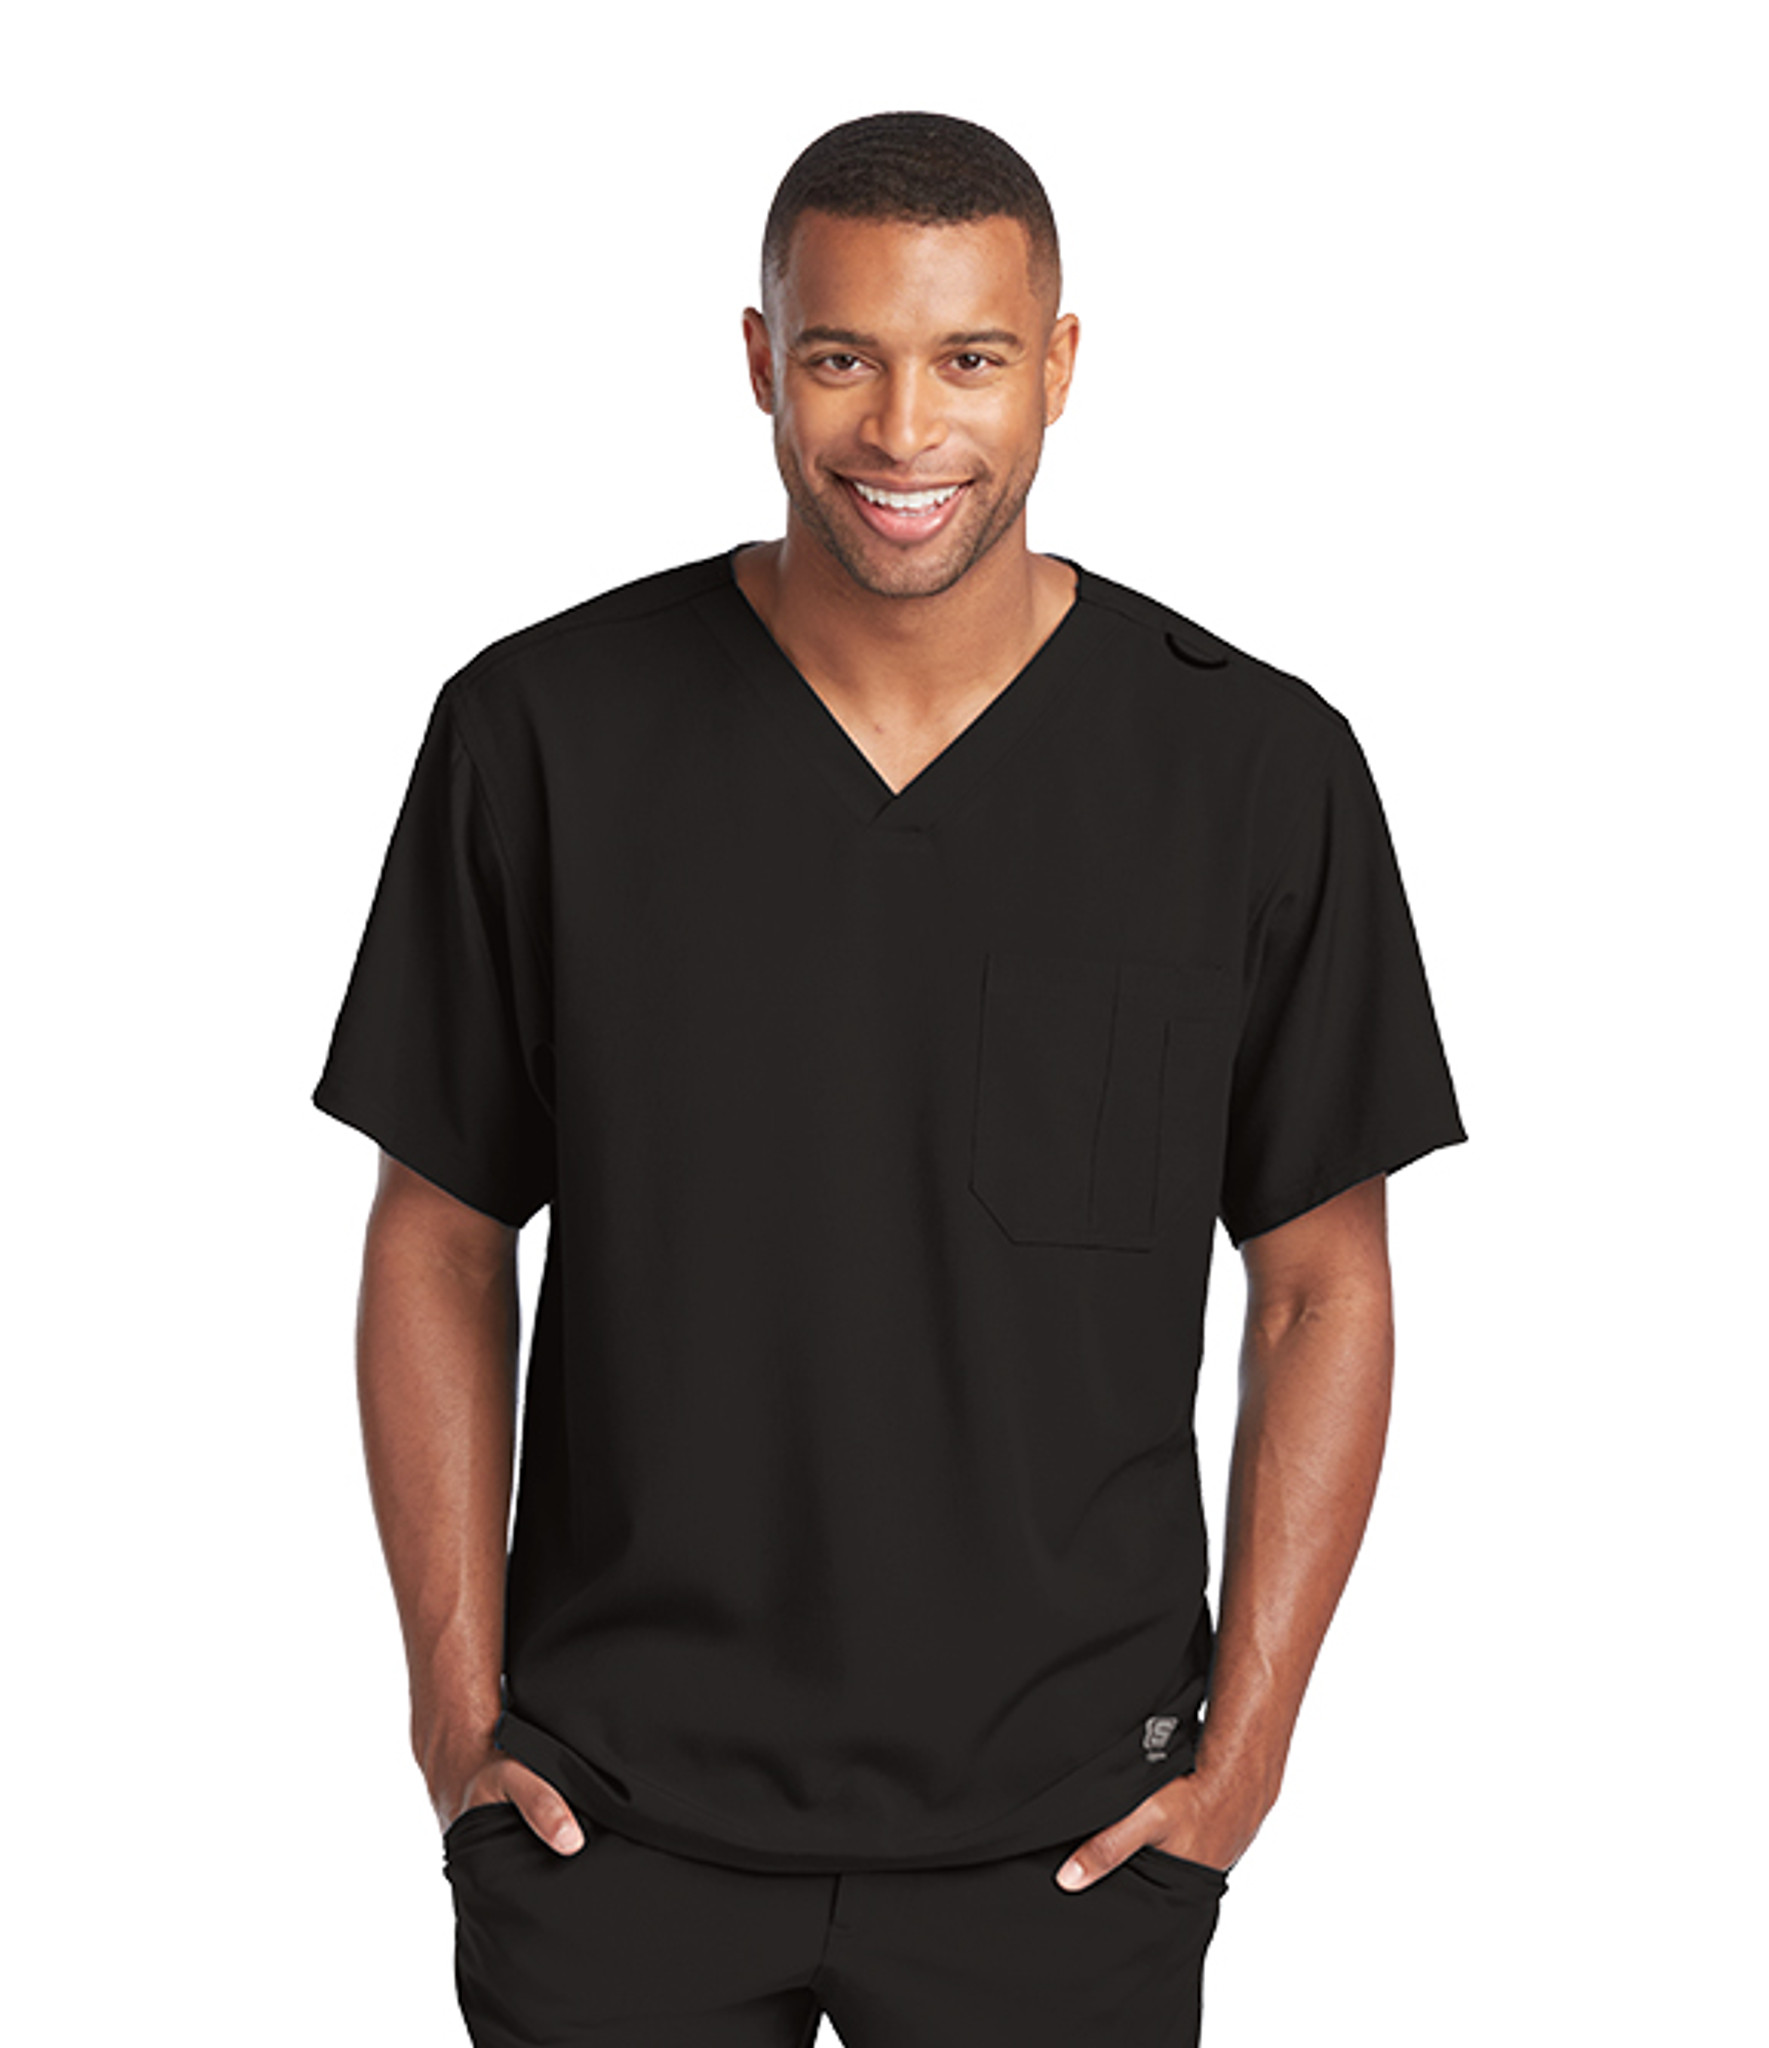 Skechers SK0112 Men's Structure V-Neck Scrub Top by Barco (SK0112) Model